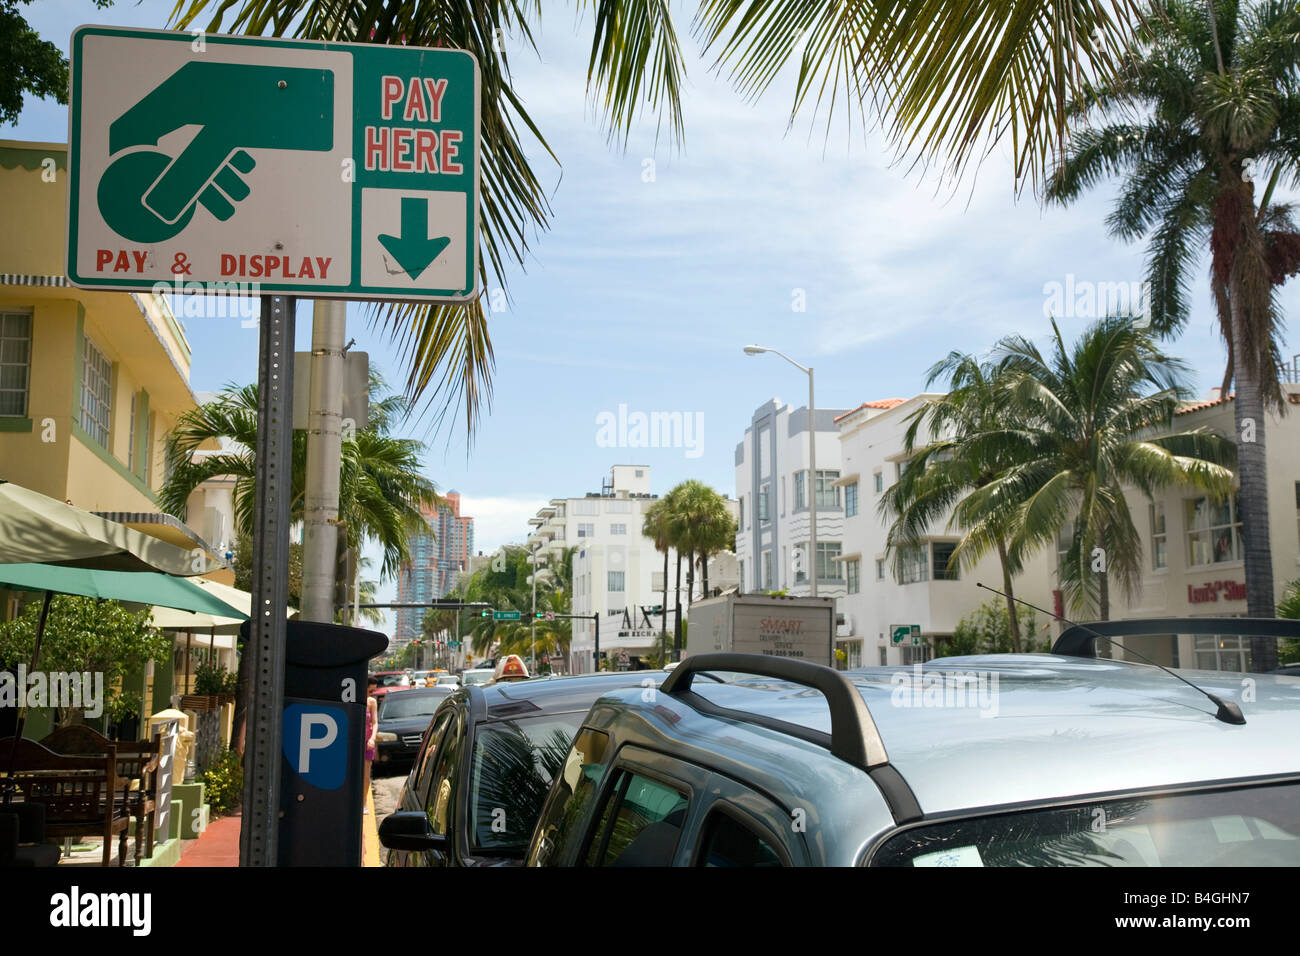 Pay & Display sign for parking in South Beach, Miami, Florida - Stock Image